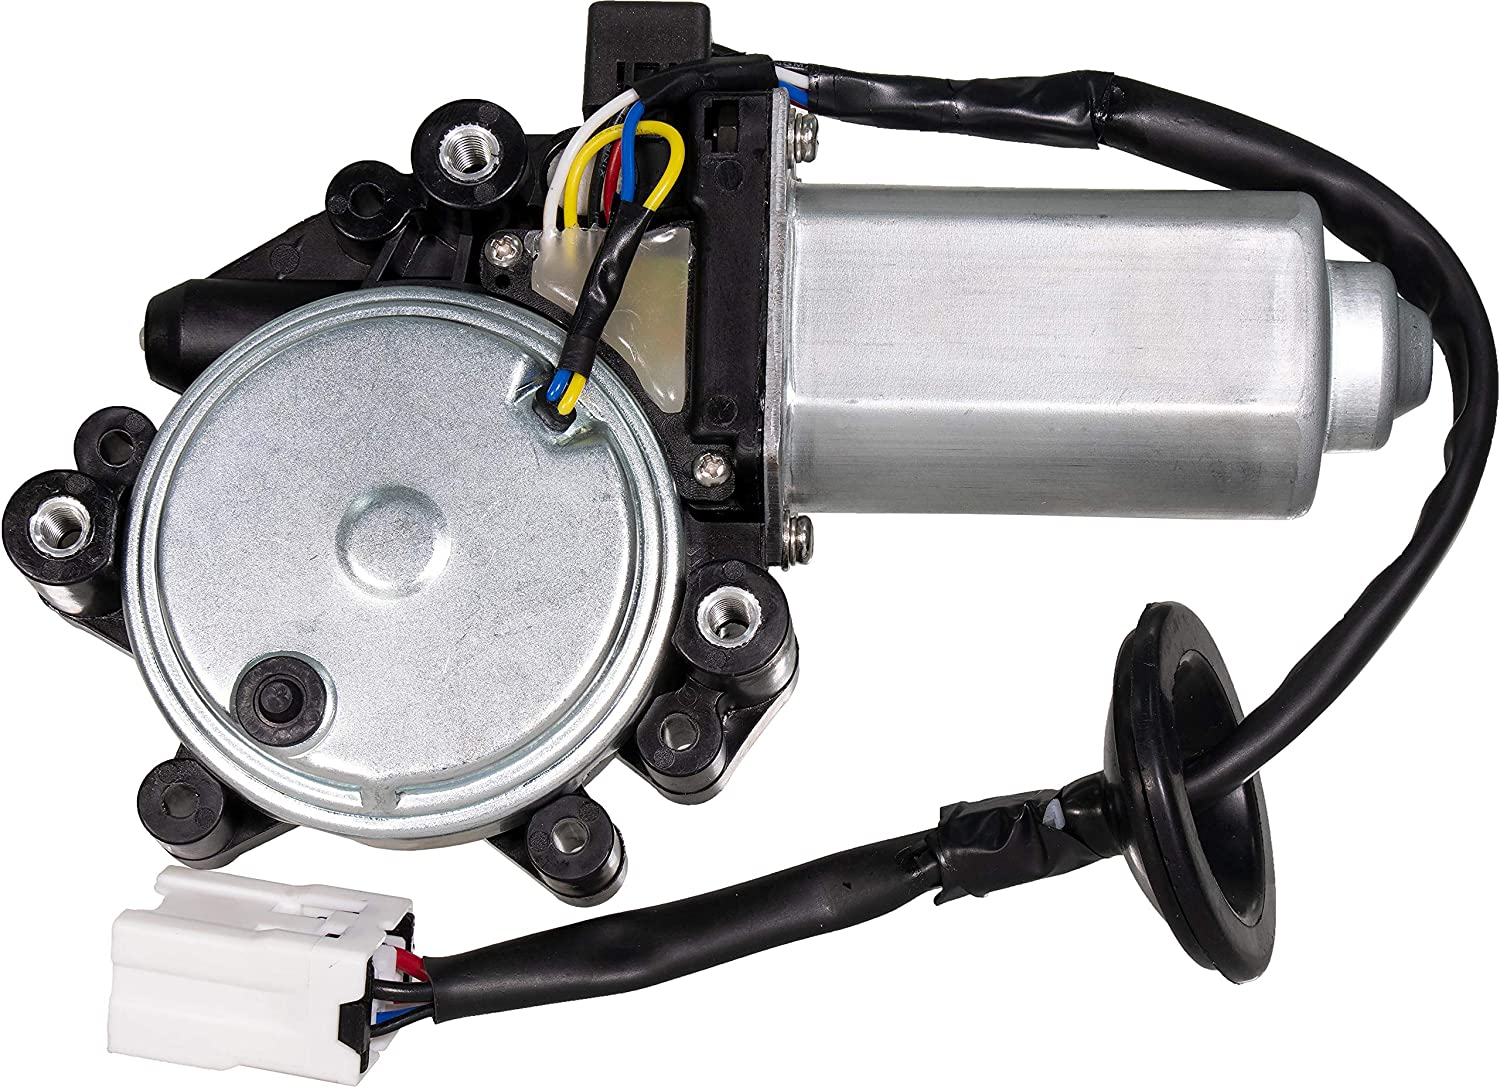 Replaces Nissan 82731-7Y010, 827317Y010 APDTY 853504 Power Window Lift Motor Fits Front Left 2004-2008 Nissan Maxima Fits Front Left